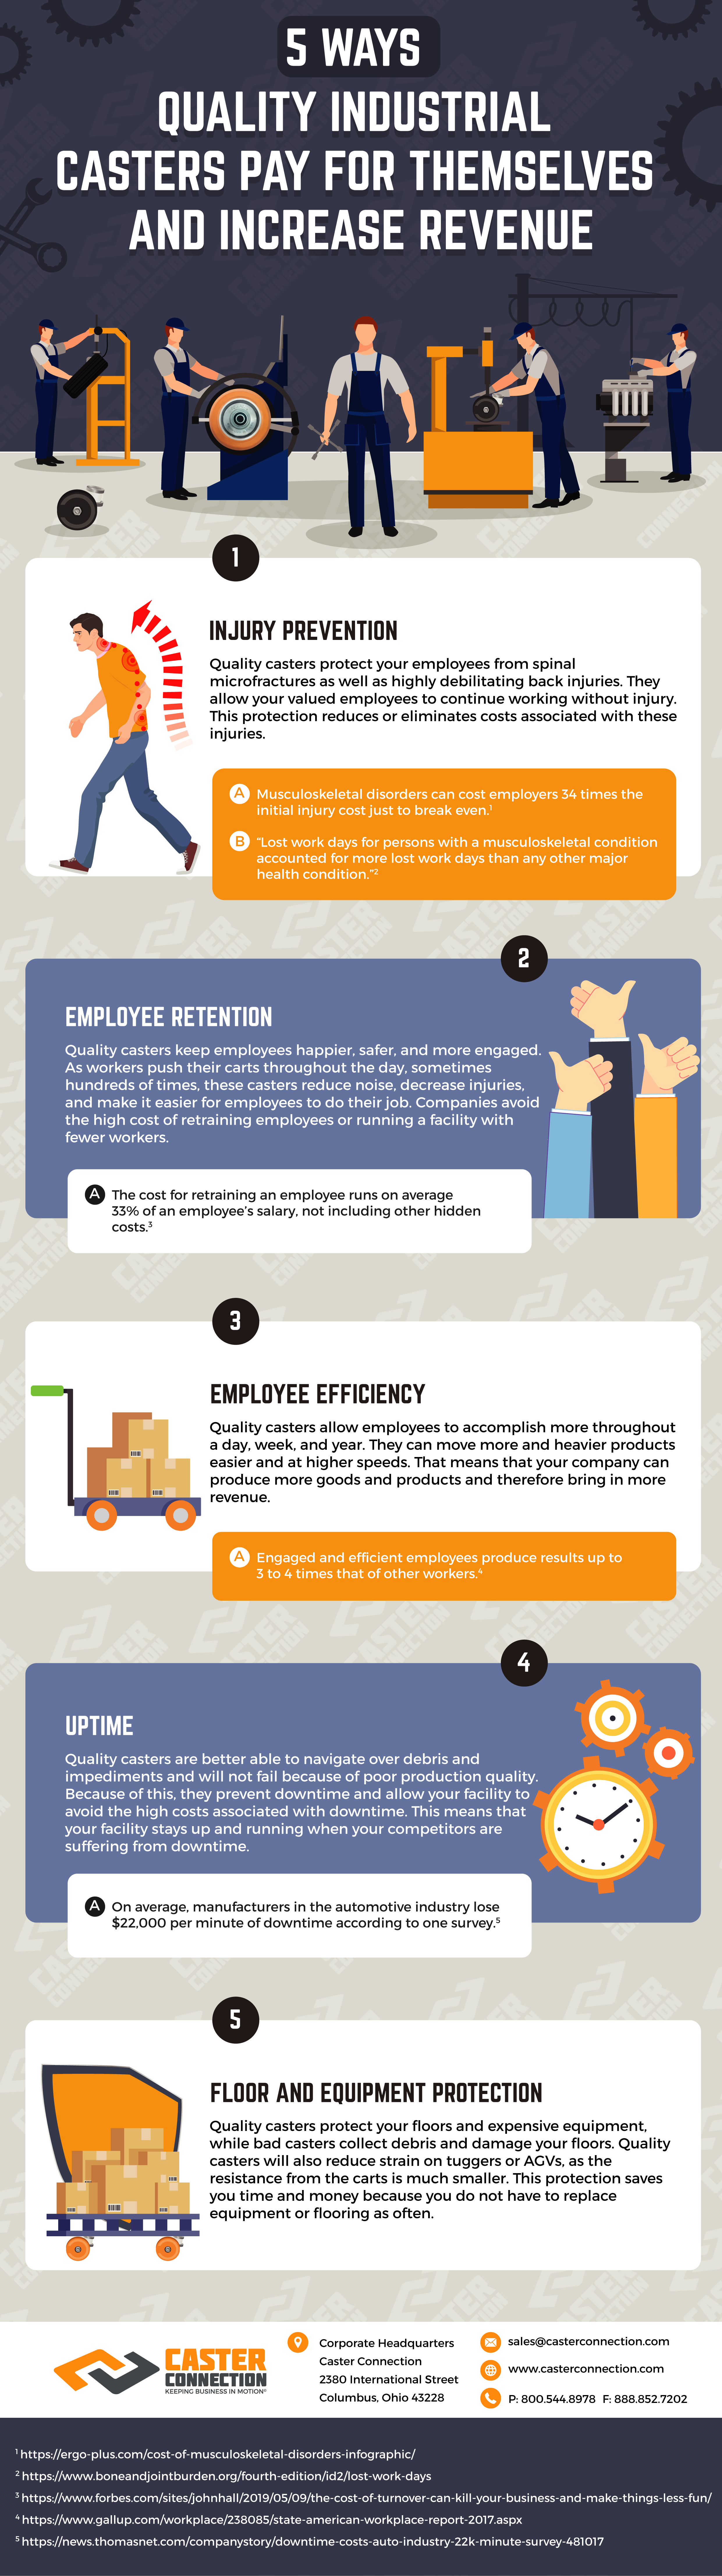 Automotive manufacturing casters make you money infographic